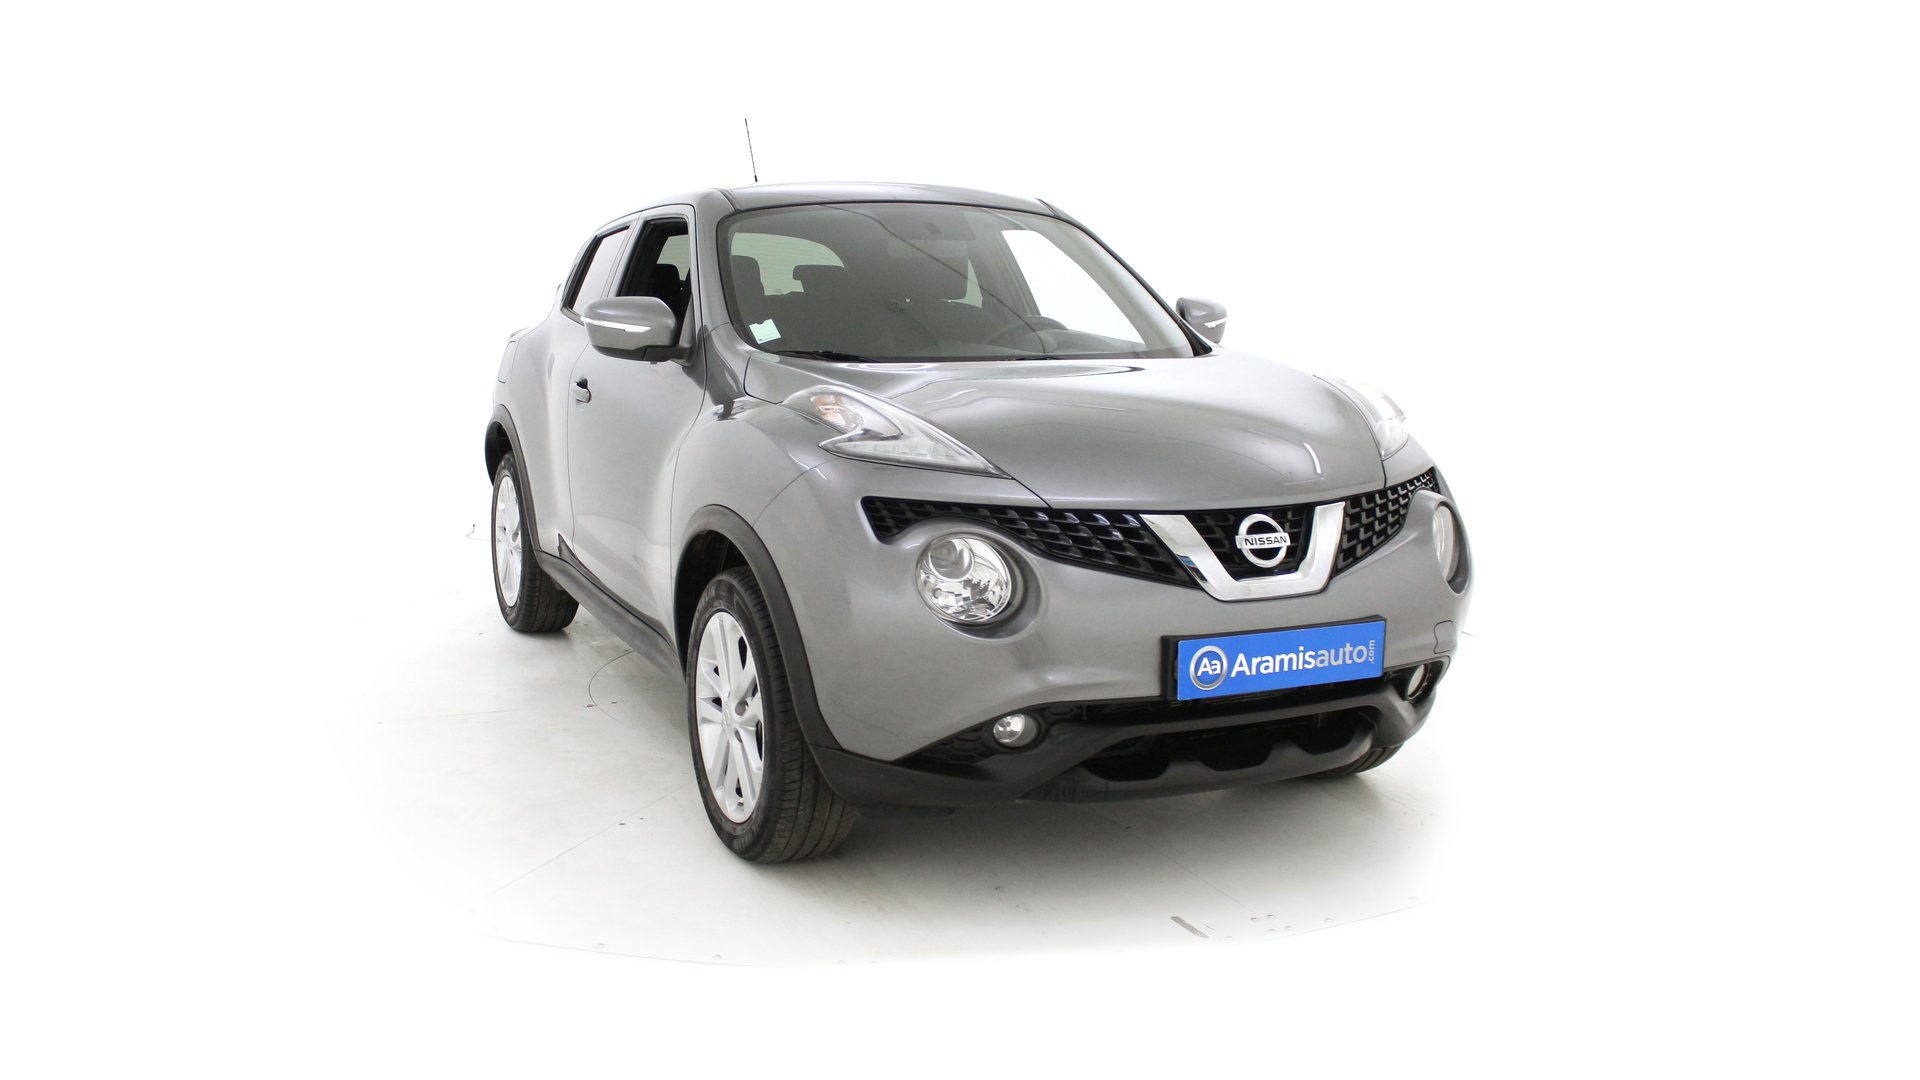 nissan juke essence ou diesel nissan juke i f15 m canique le nouveau nissan juke restyl le. Black Bedroom Furniture Sets. Home Design Ideas